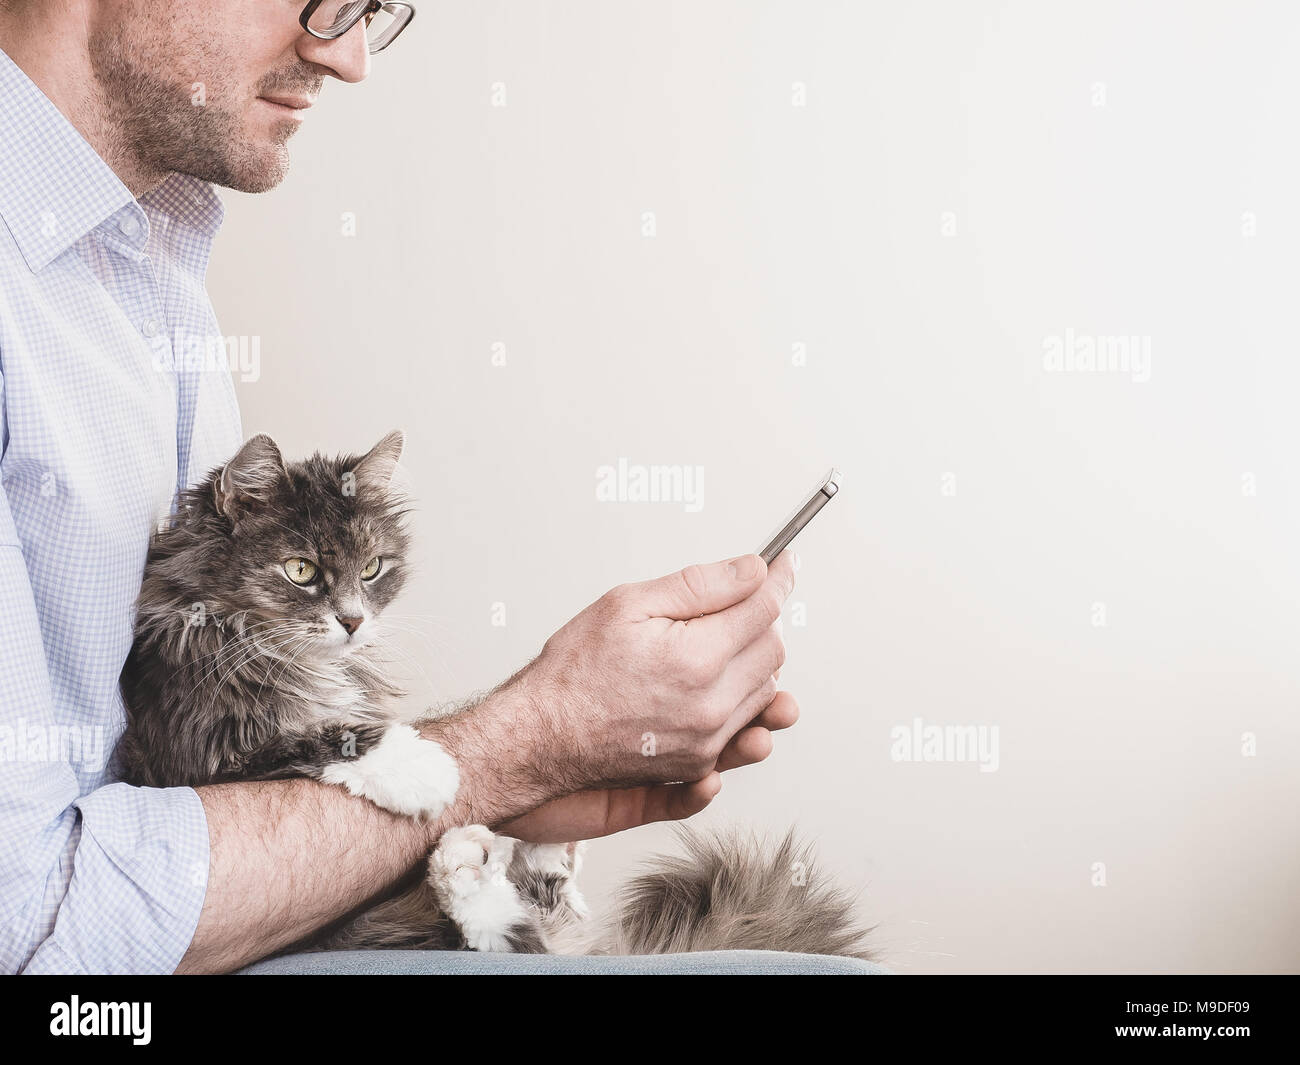 Cute man in glasses with a mobile phone on a white background holding a cute kitten. People, pets, care - Stock Image